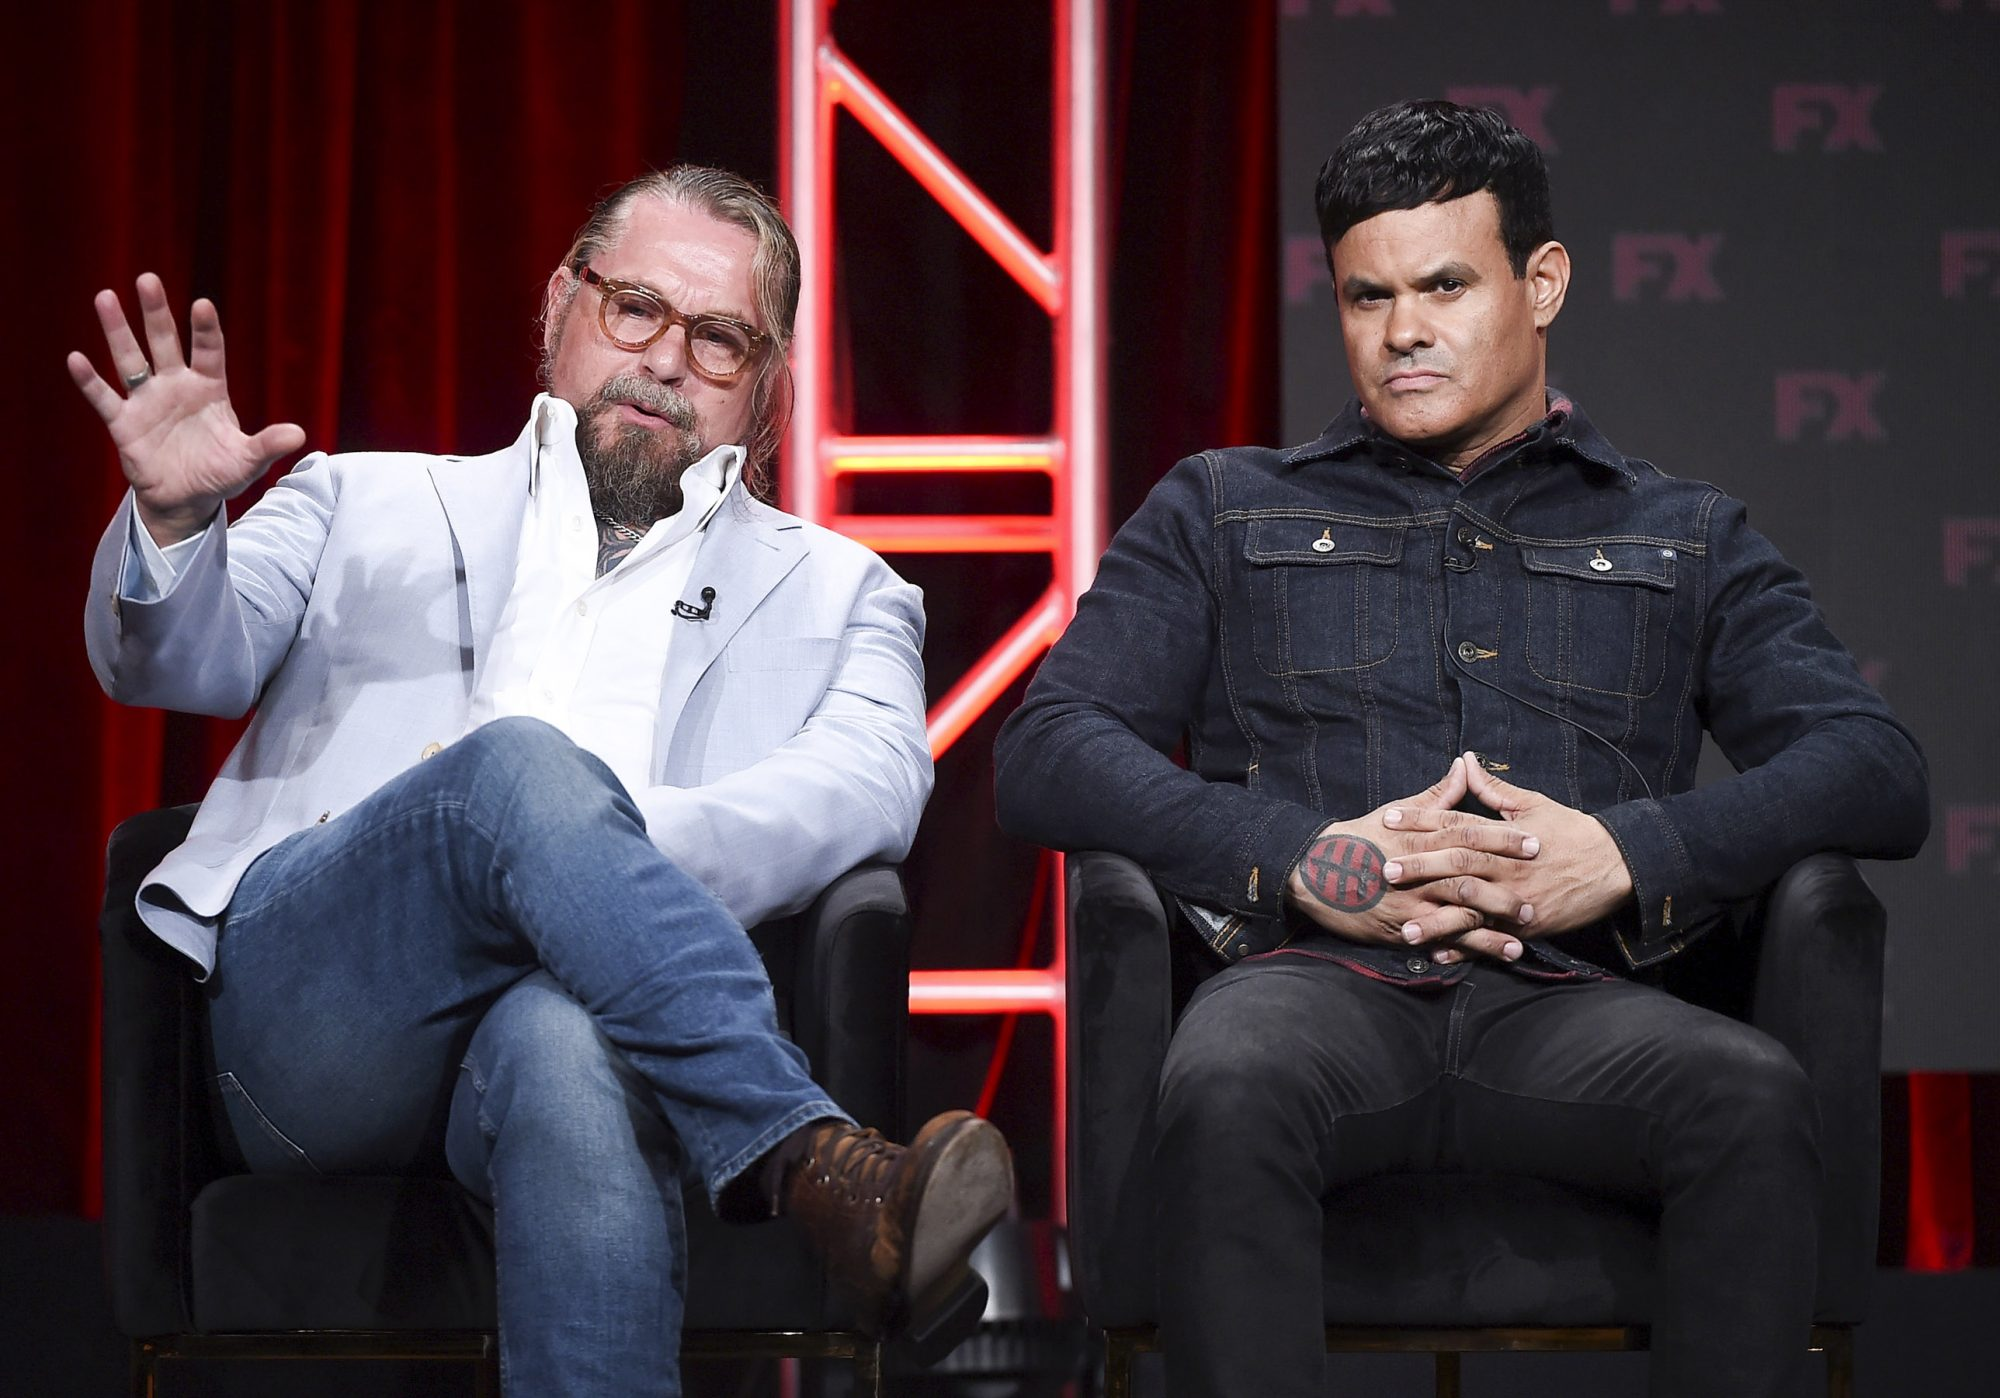 "BEVERLY HILLS - AUGUST 6: (L-R) Co-Creators/Executive Producers/Writers Kurt Sutter and Elgin James onstage during the ""Mayans M.C."" panel at the FX Networks portion of the Summer 2019 TCA Press Tour at the Beverly Hilton on August 6, 2019 in Los Angeles, California. (Photo by Frank Micelotta/FX Networks/PictureGroup)"